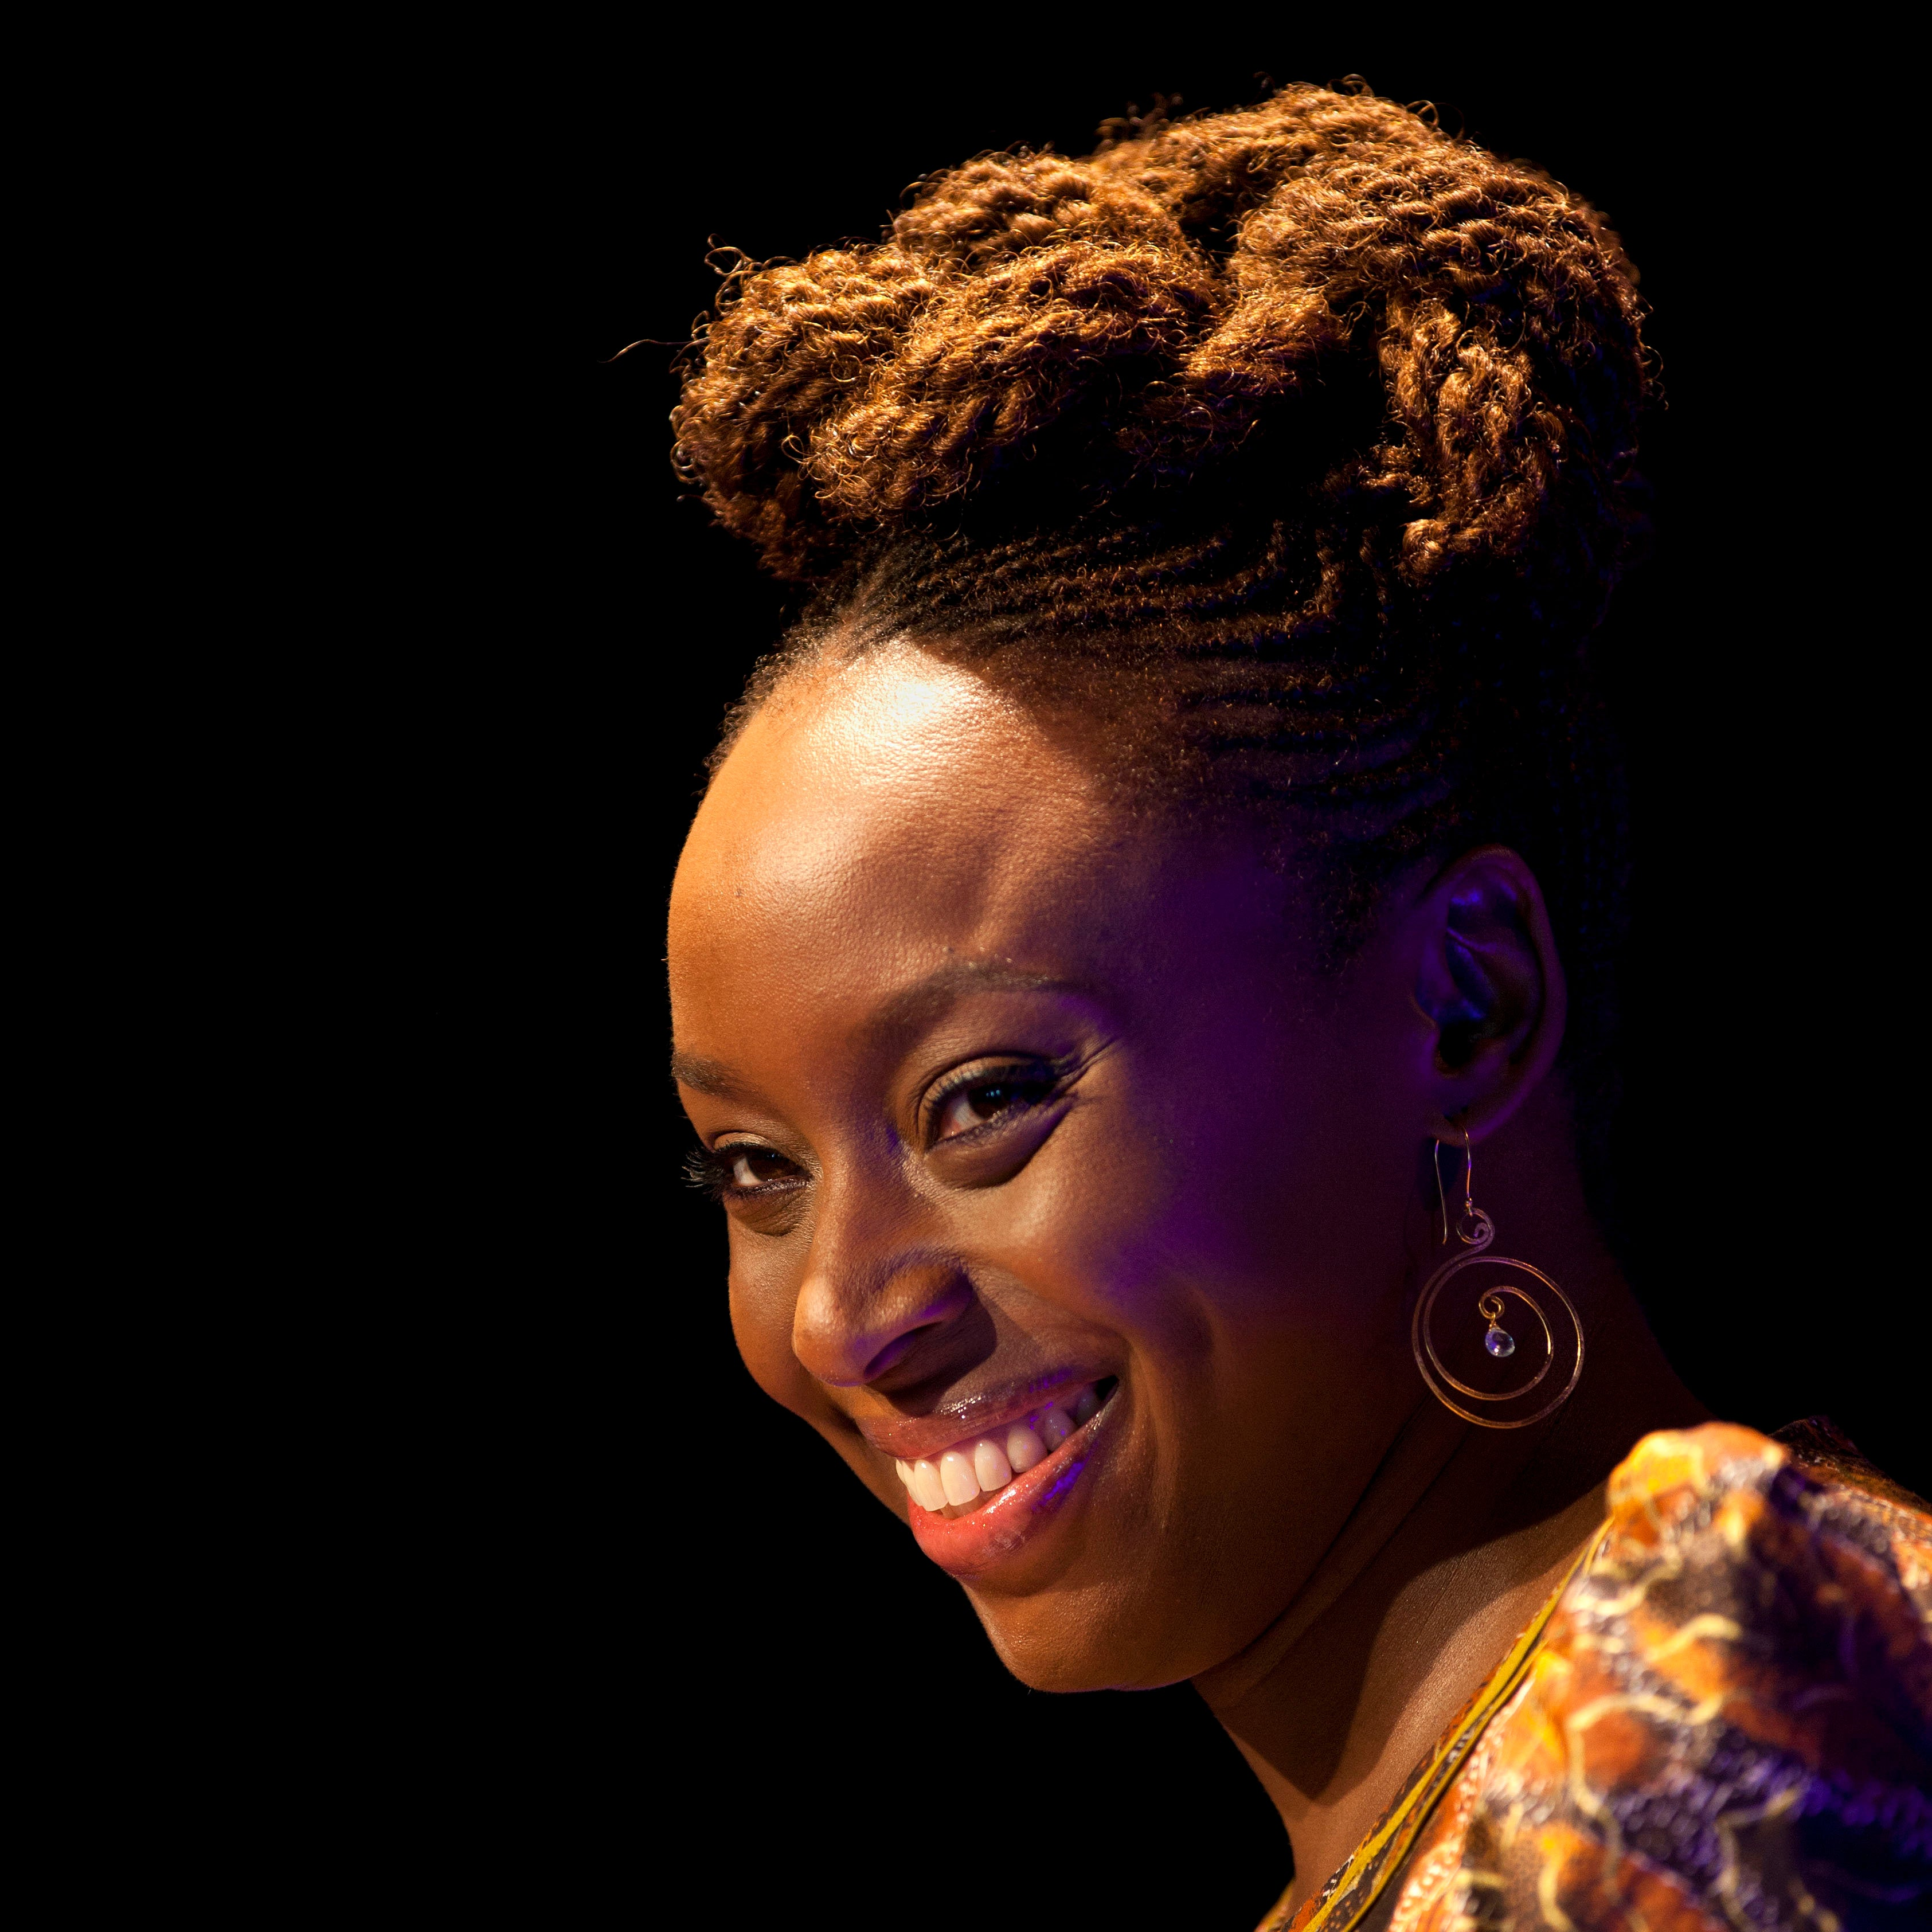 This Director Couldn't Wait For An 'Americanah' Trailer, So He Made His Own